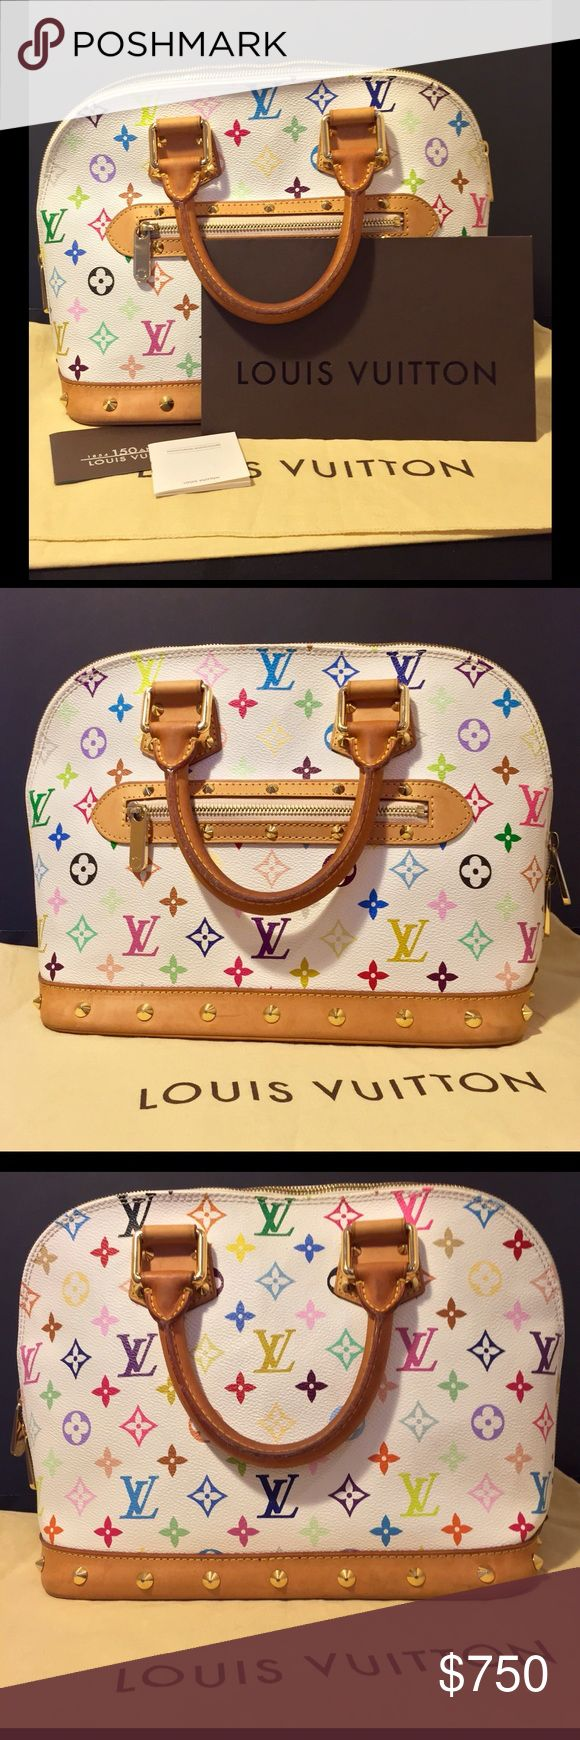 👜Louis Vuitton👜 Alma Multicolor Monogram Purse 💖GENTLY USED💖 Louis Vuitton Murakami limited edition purse by Takashi Murakami 💸bought at Tyson's Corner in D.C., made in 2004 & 💯% authentic!!! 🍒EUC: minimal signs of wear as seen in all pics provided - NO rips, tears, holes, ink, or makeup stains ⚡️some water stains on bottom & edges, etc. of Patina w/ wear on handles as well 👜Incl dustbag, cert of auth & box (box kinda beat up) 💲MAKE AN OFFER💲💐BUNDLE DISCOUNTS💐 🚫NO LOW BALLING…